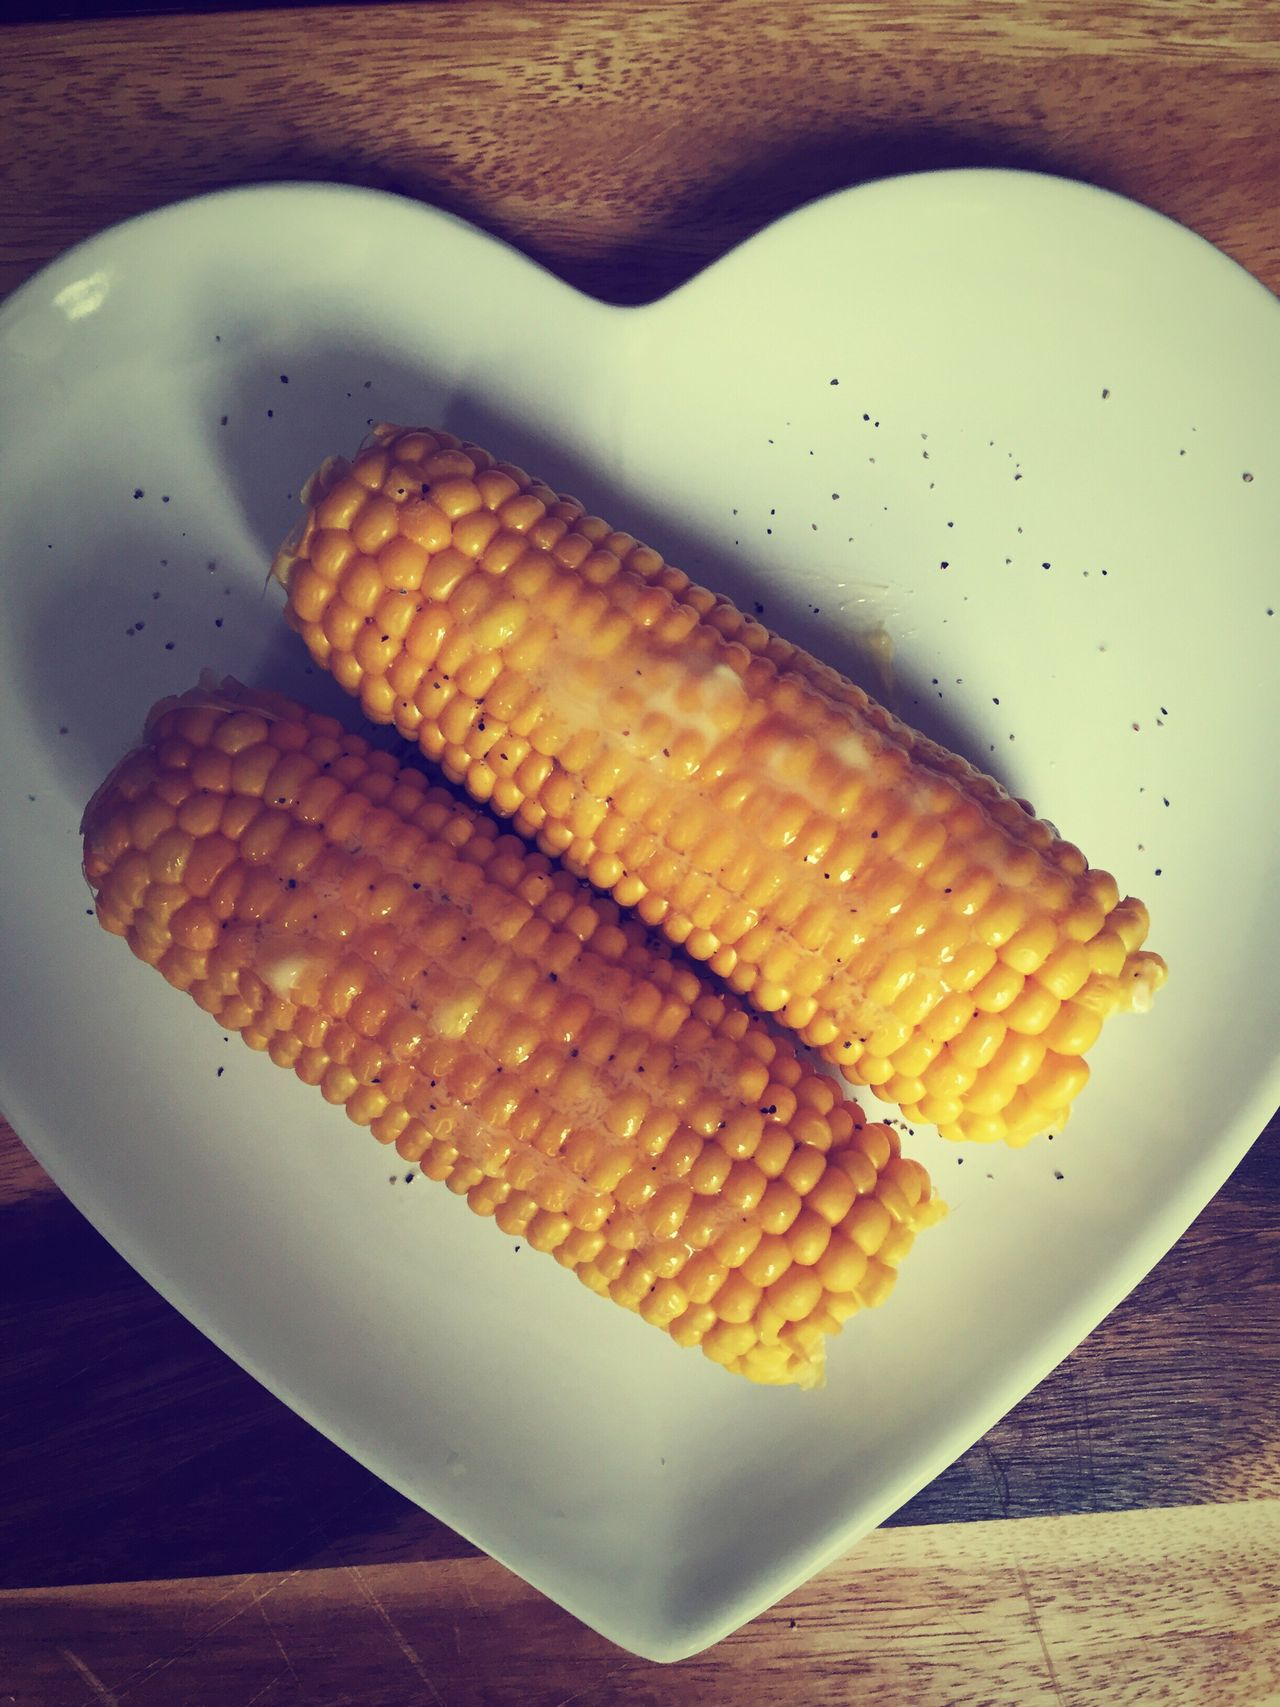 Sweetcorn Food And Drink Food Indoors  Close-up Freshness Still Life Preparing Food Preparation  Healthy Eating Cooked Ready-to-eat Meal Corn Plate Overhead View Appetizer Indulgence In A Row Temptation Homemade Butter Pepper On A Plate Heart Shape White Plate Sweet Corn